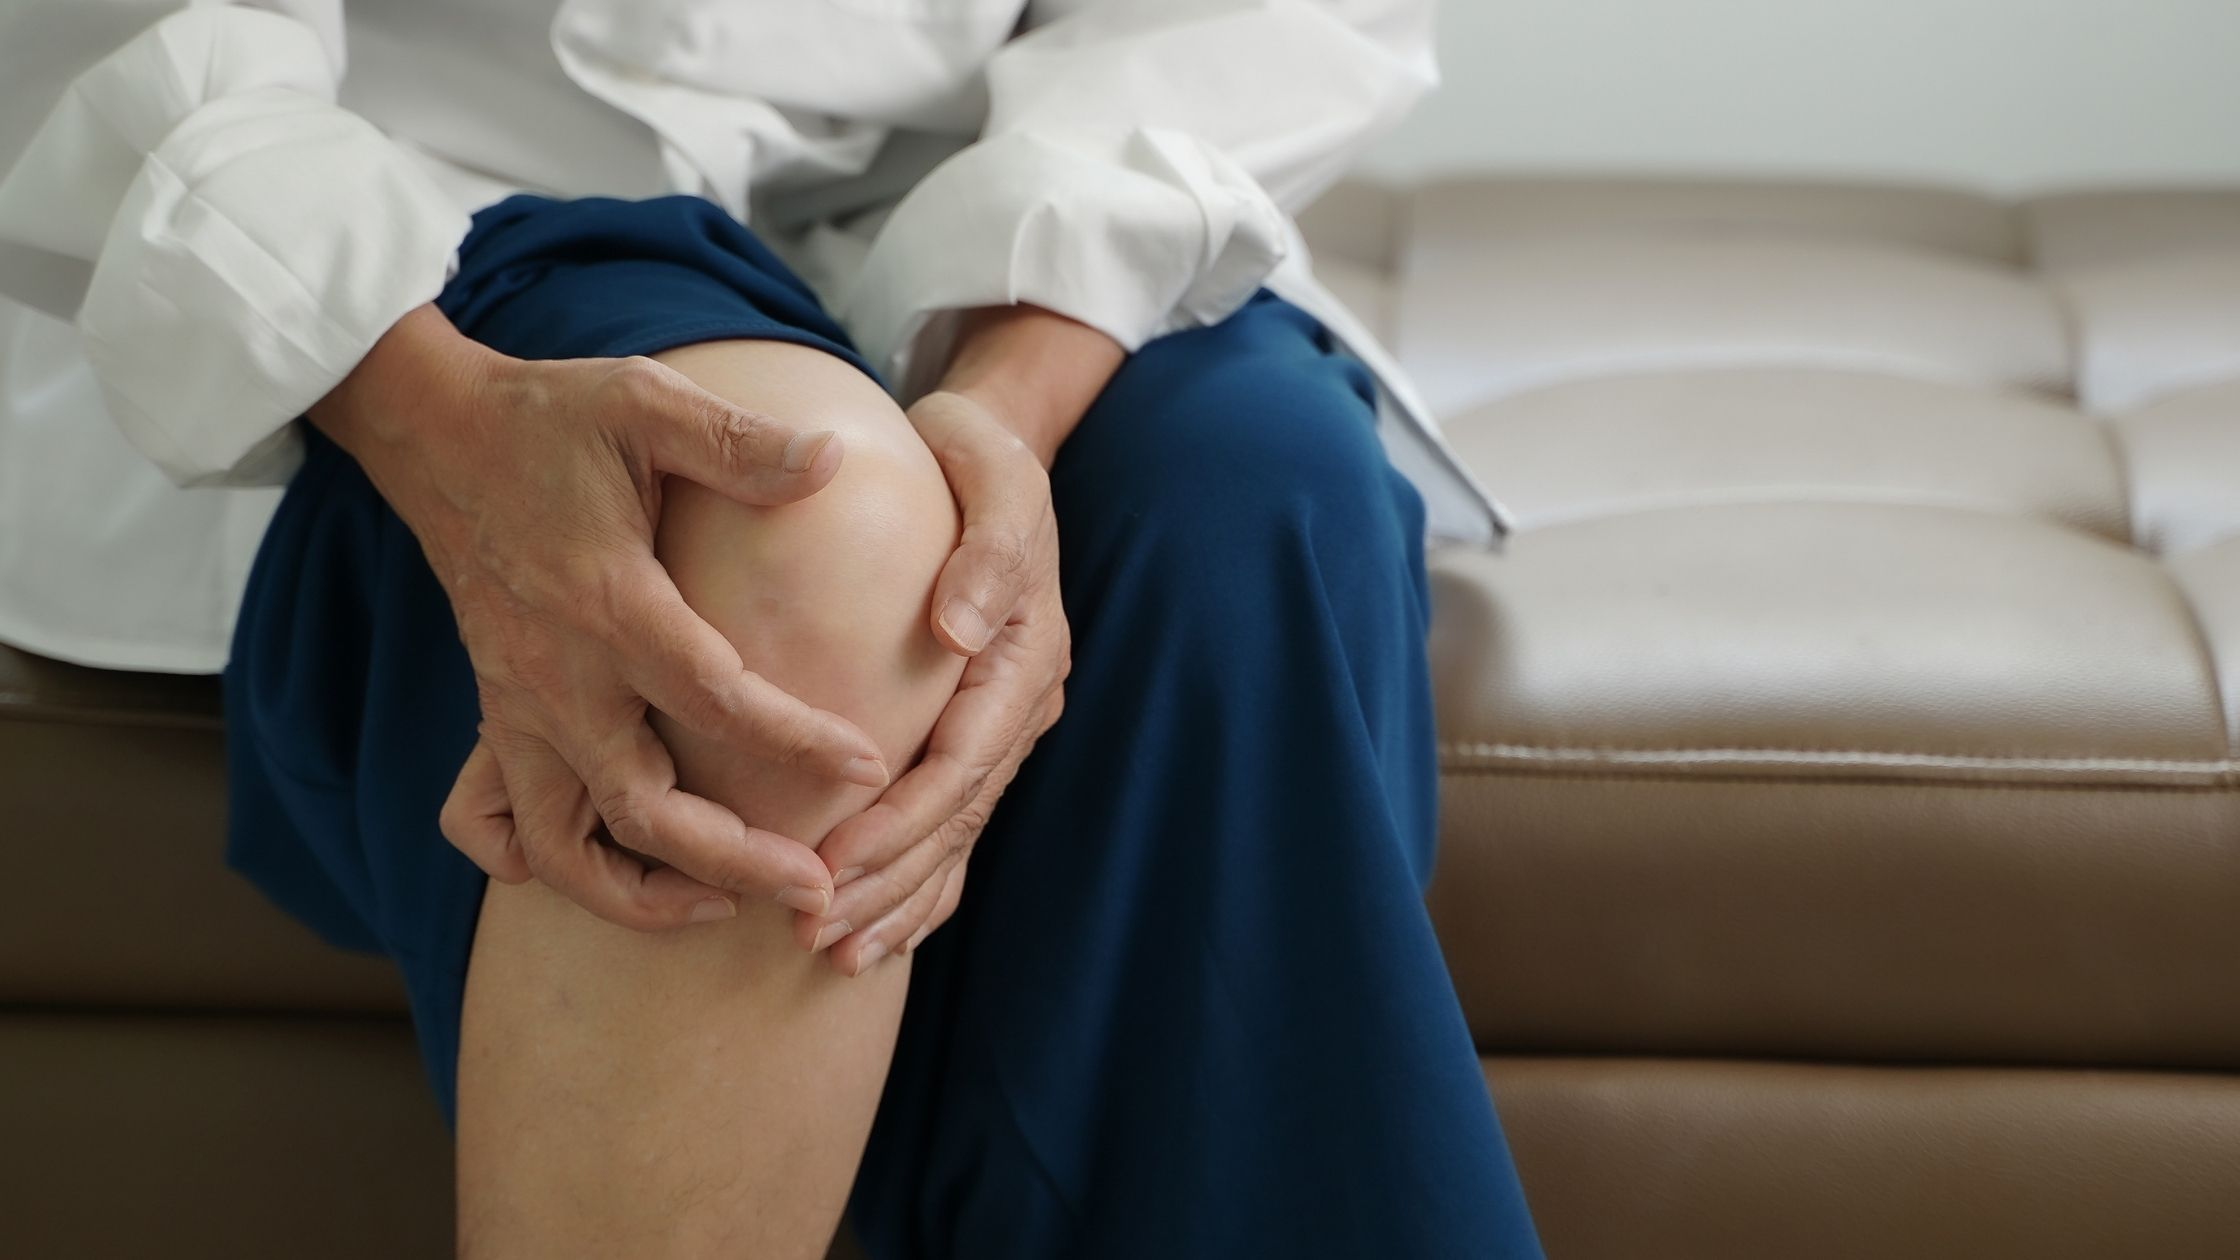 Arthritis: Does diet play a role in treatment?